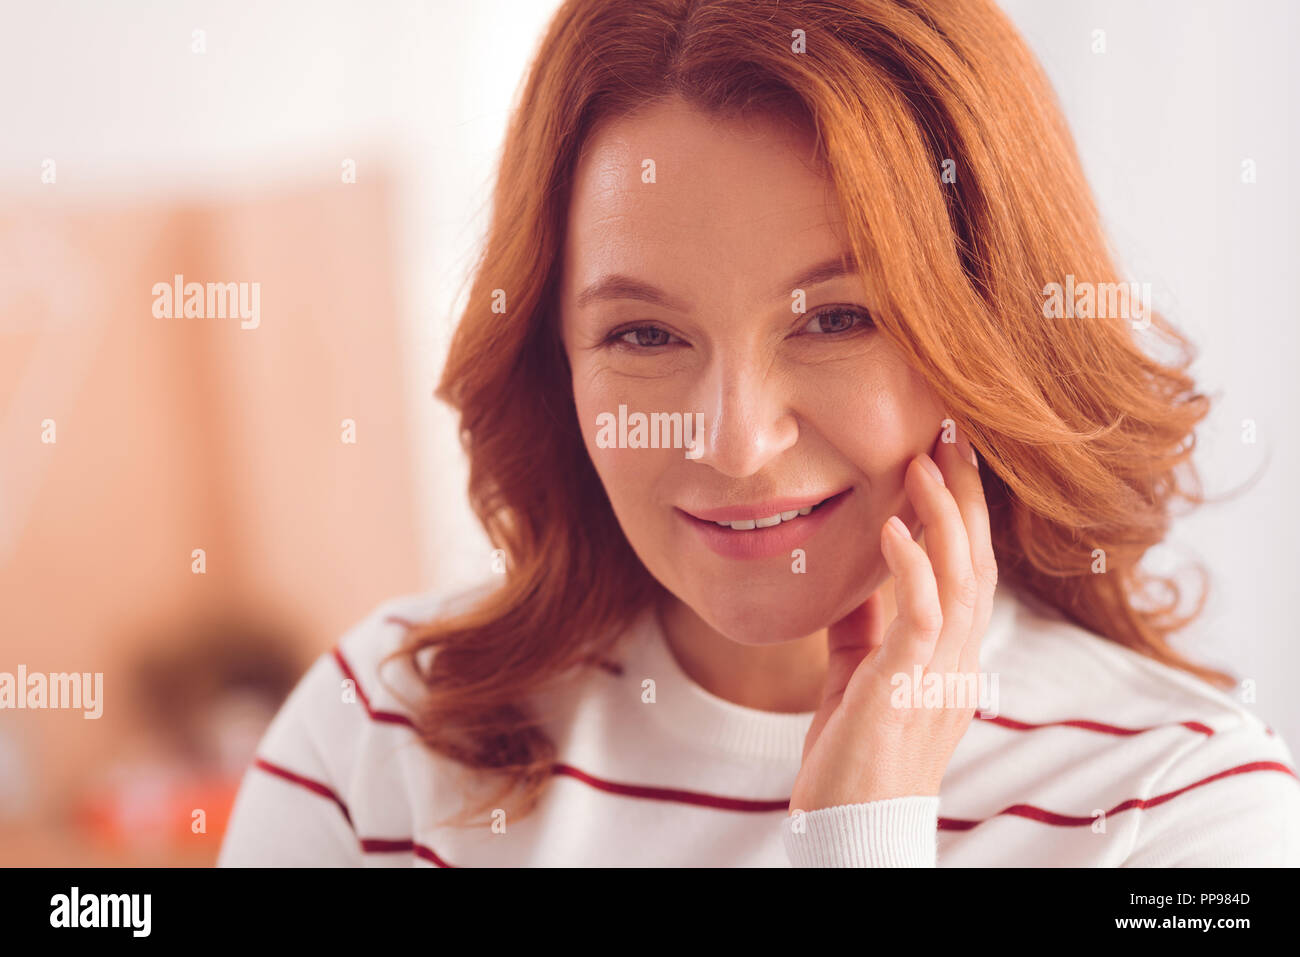 Pleasant woman expressing positive emotions - Stock Image